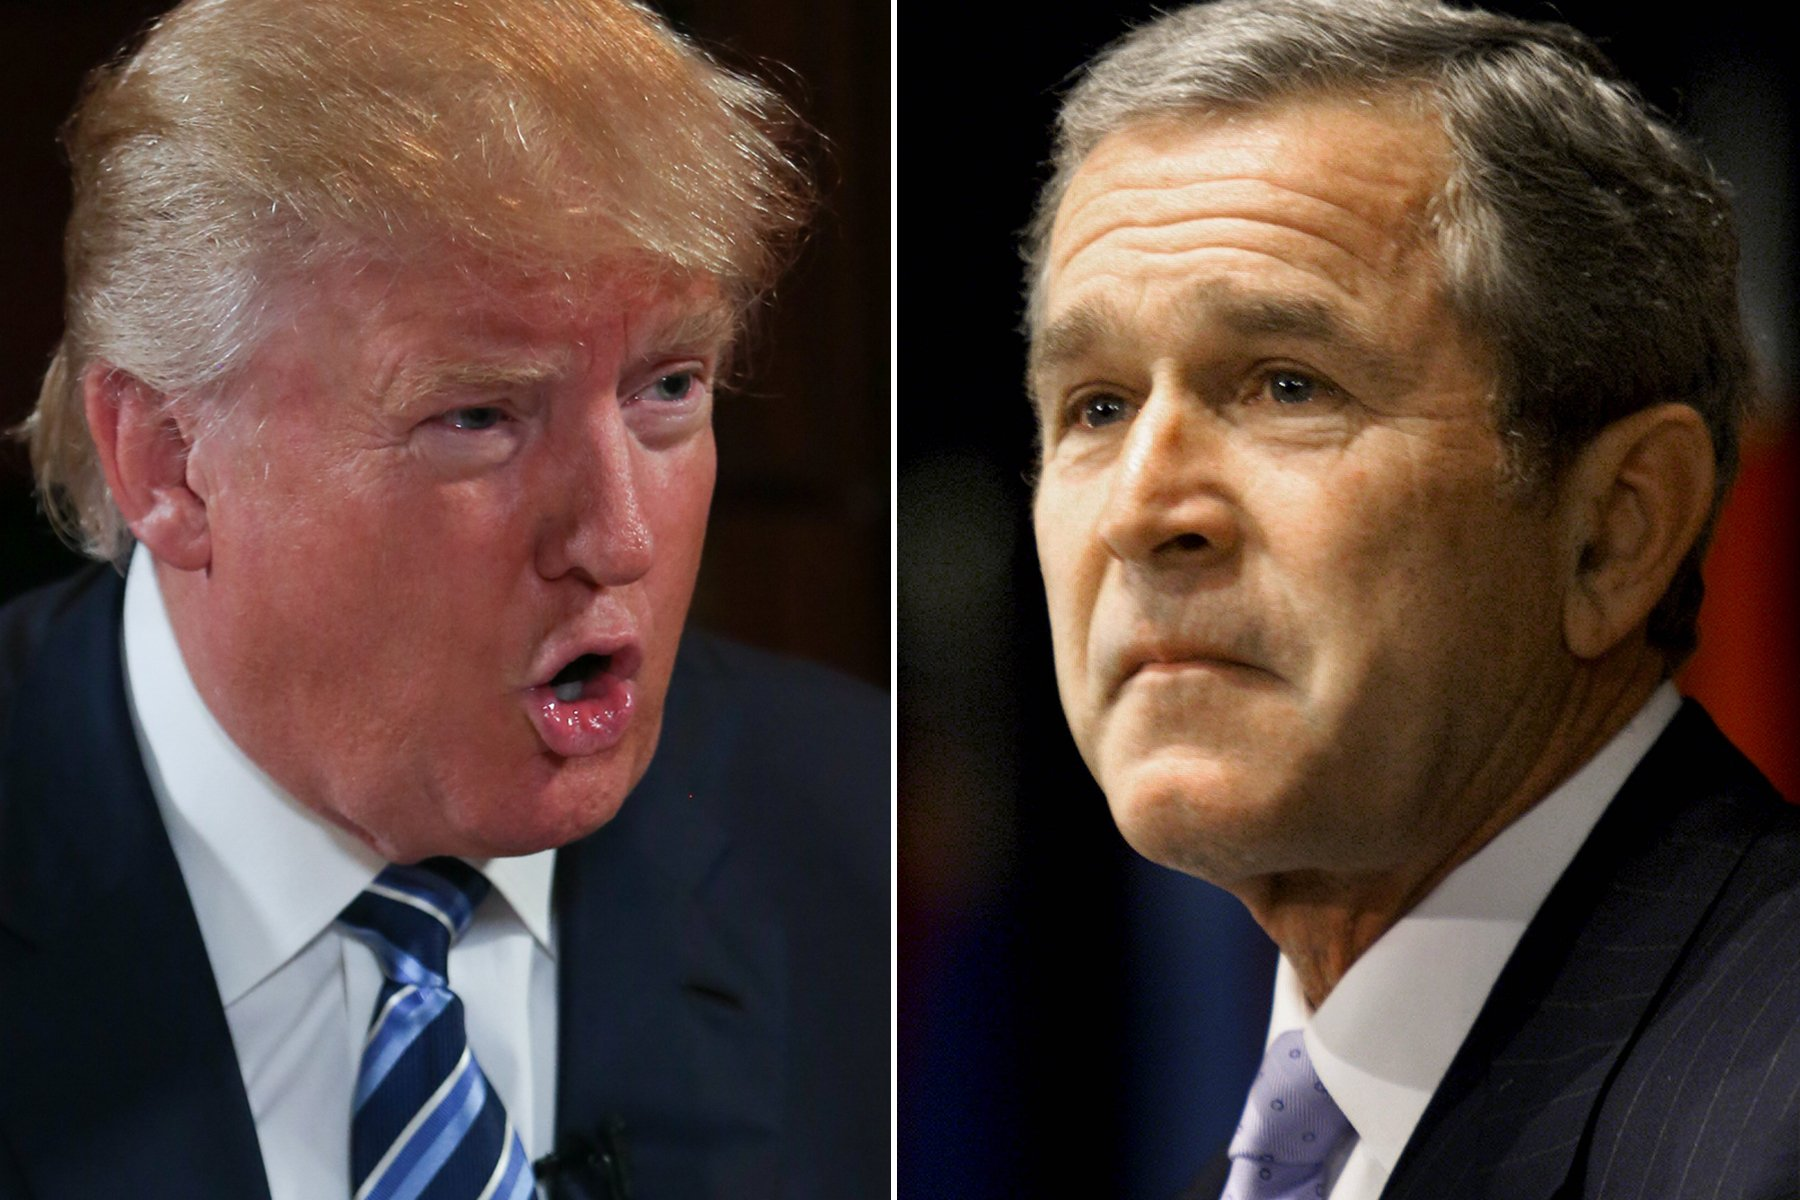 """President Trump slammed former President George W. Bush over the 2003 U.S. invasion of Iraq –referring to it as """"the single worst decision ever made,"""" and that it was comparable to""""throwing a big fat brick into a hornet's nest."""" Speaking to a group of GOP donors at a Mar-a-Lago closed door lunch and fundraiser, Trump …"""